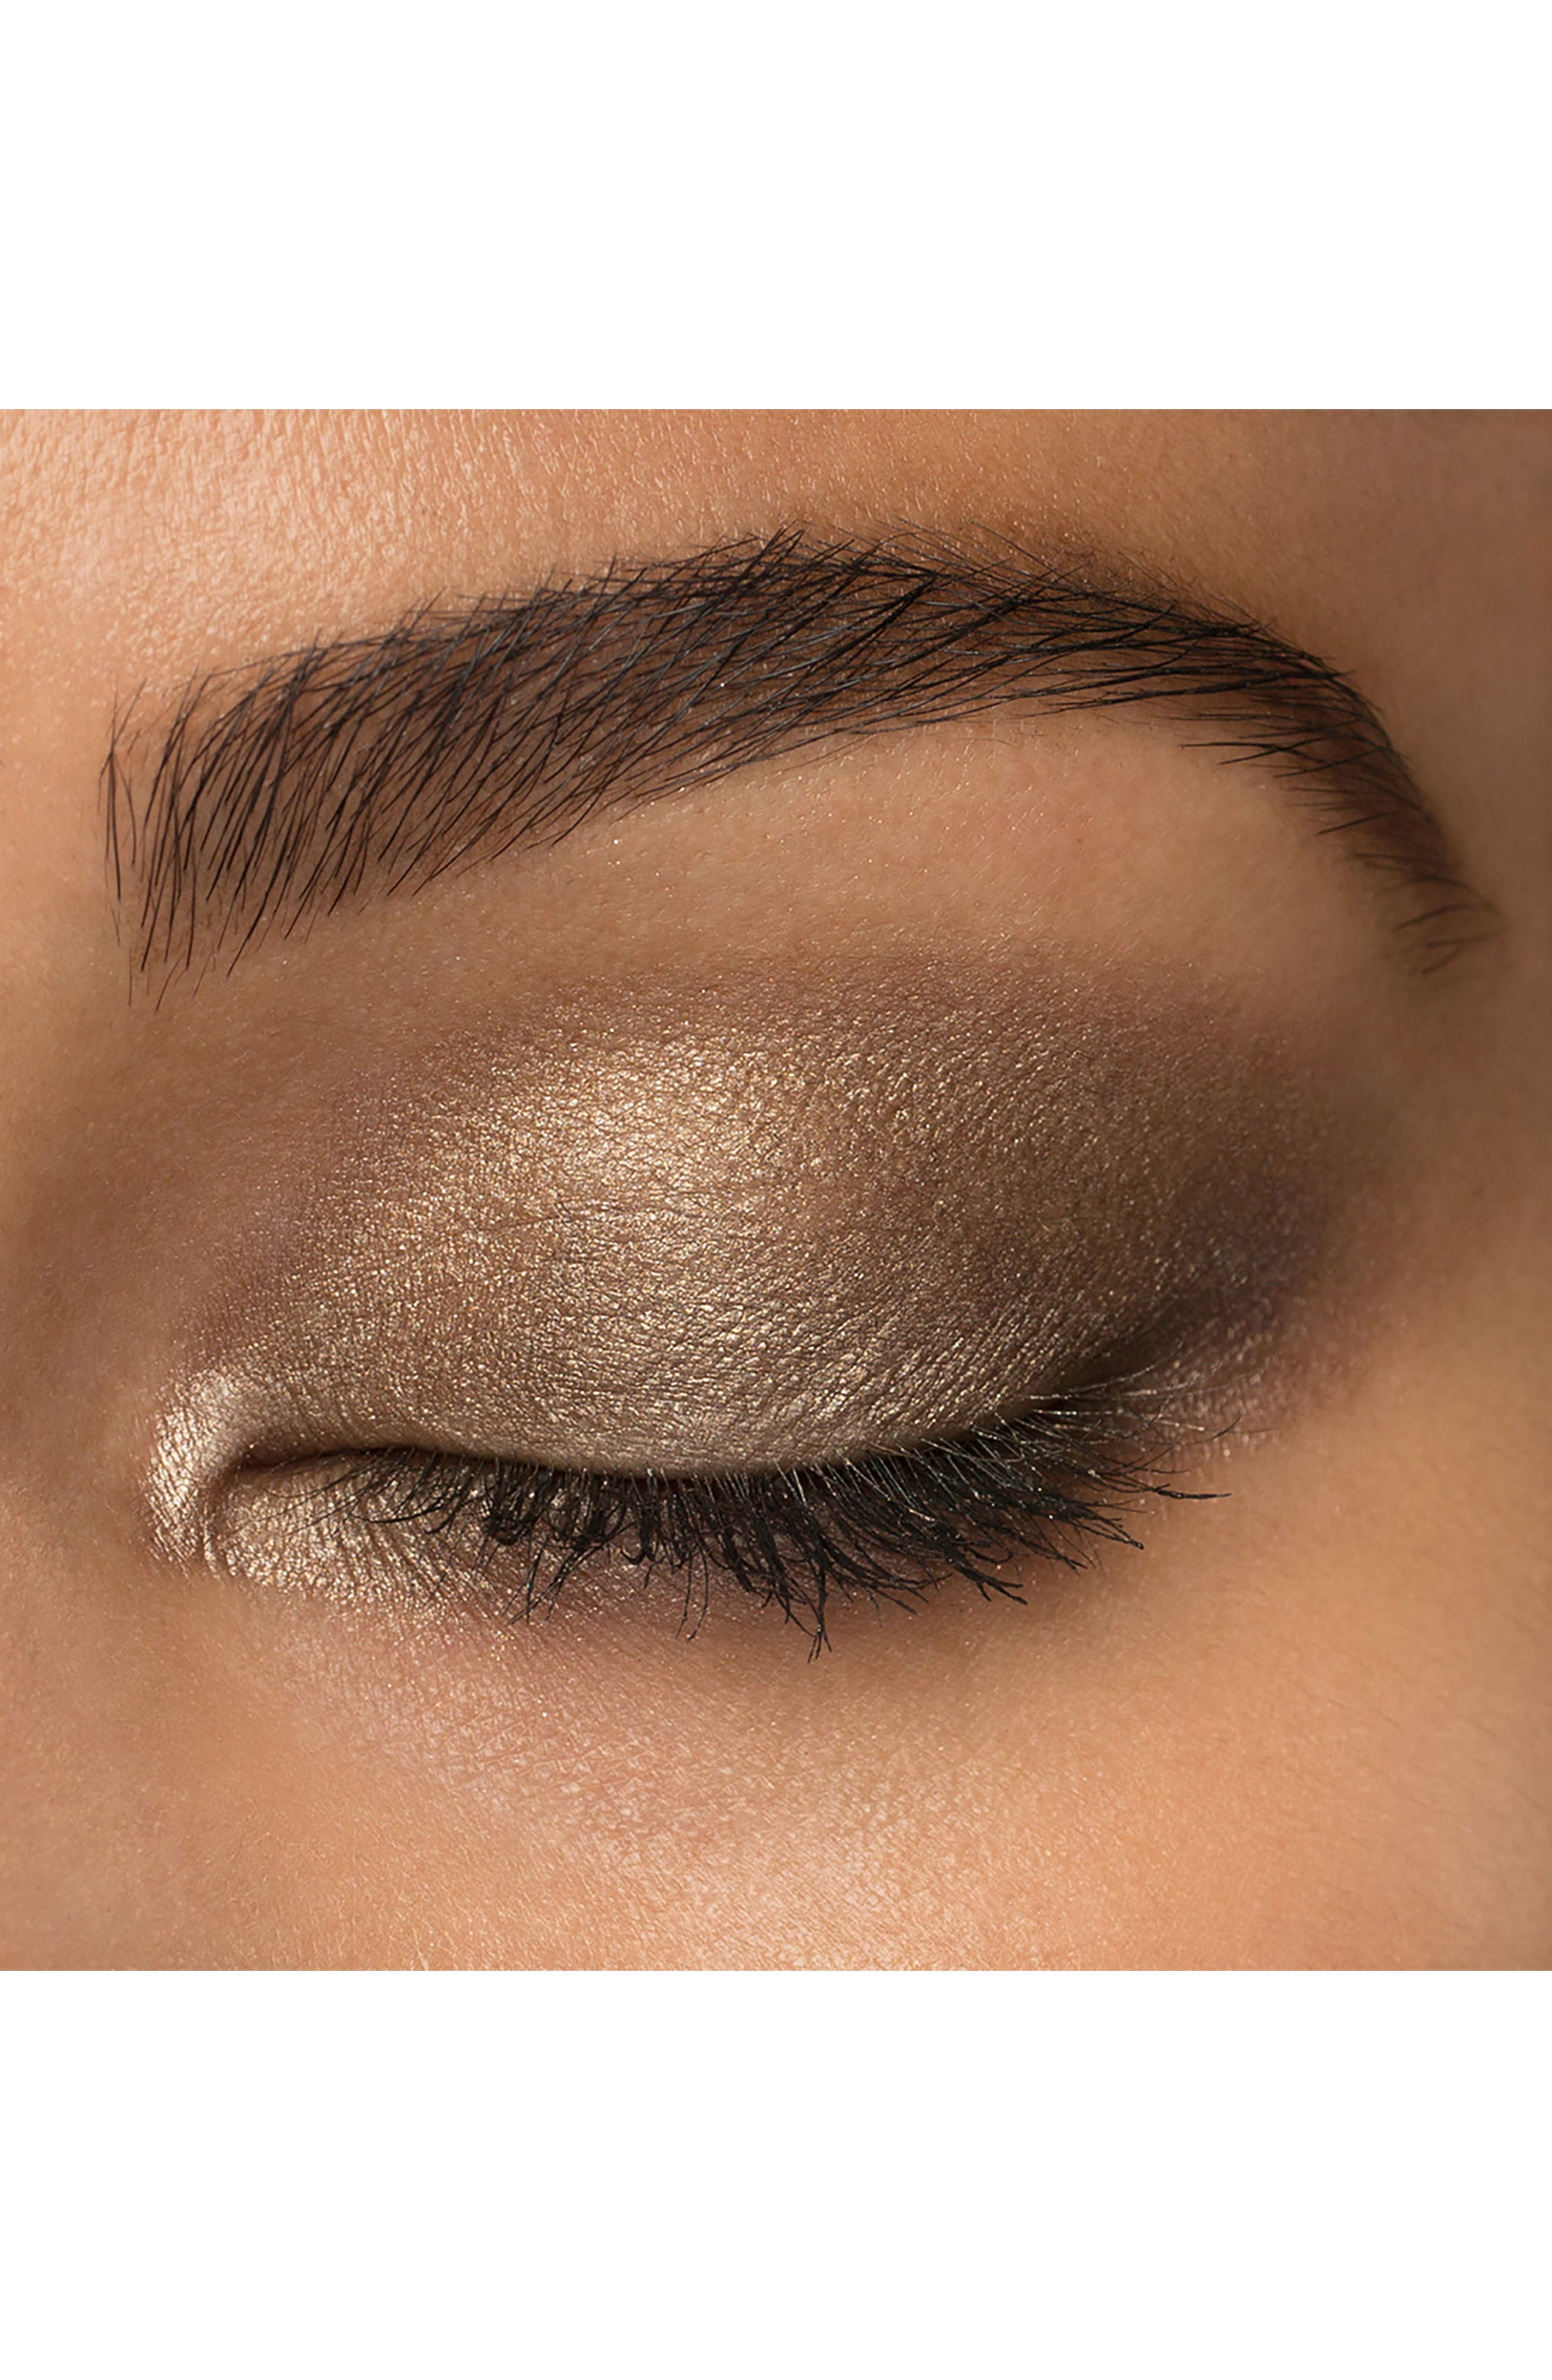 Julep<sup>™</sup> Eyeshadow 101 Eyeshadow Stick,                             Alternate thumbnail 2, color,                             TAUPE SHIMMER